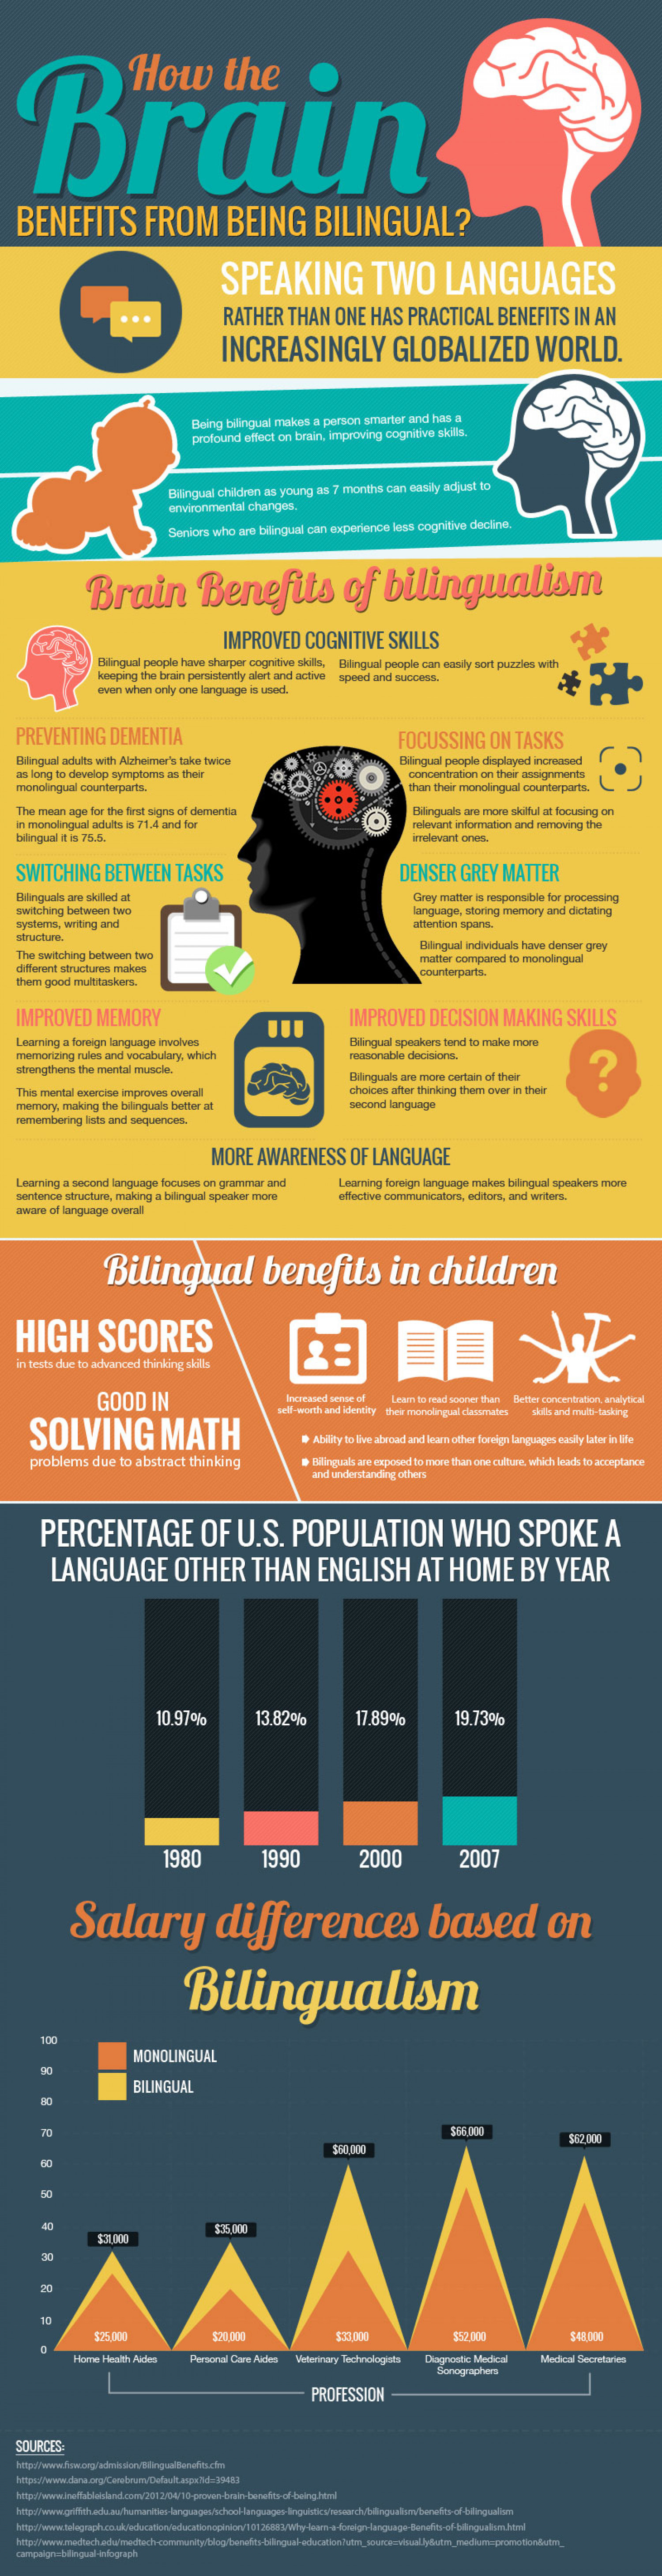 How the Brain Benefits from Being Bilingual Infographic